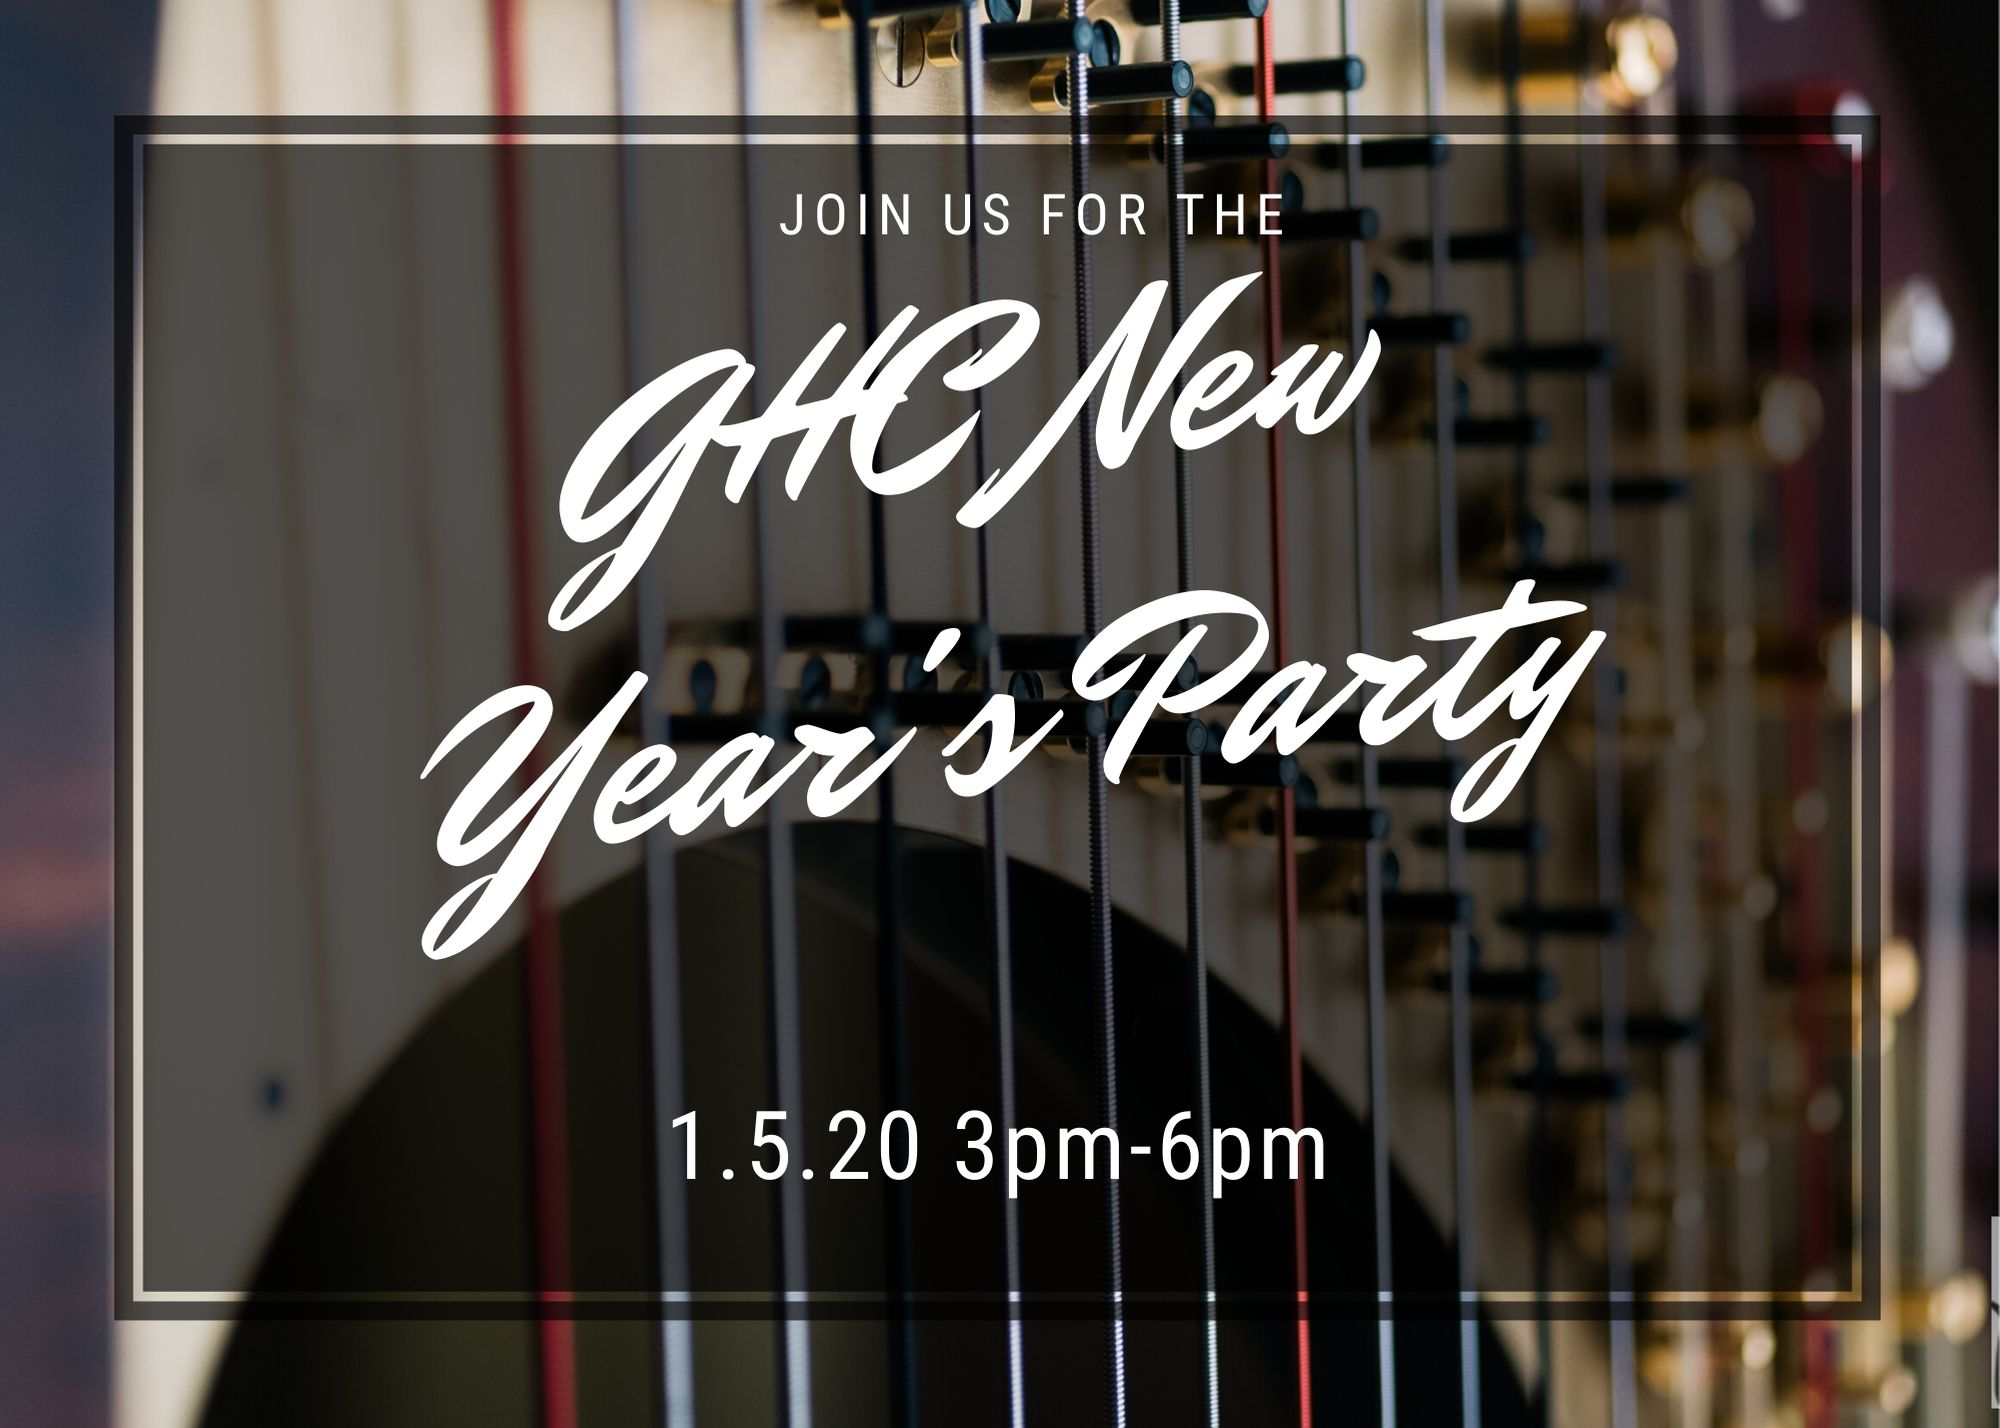 GHC New Year's Party